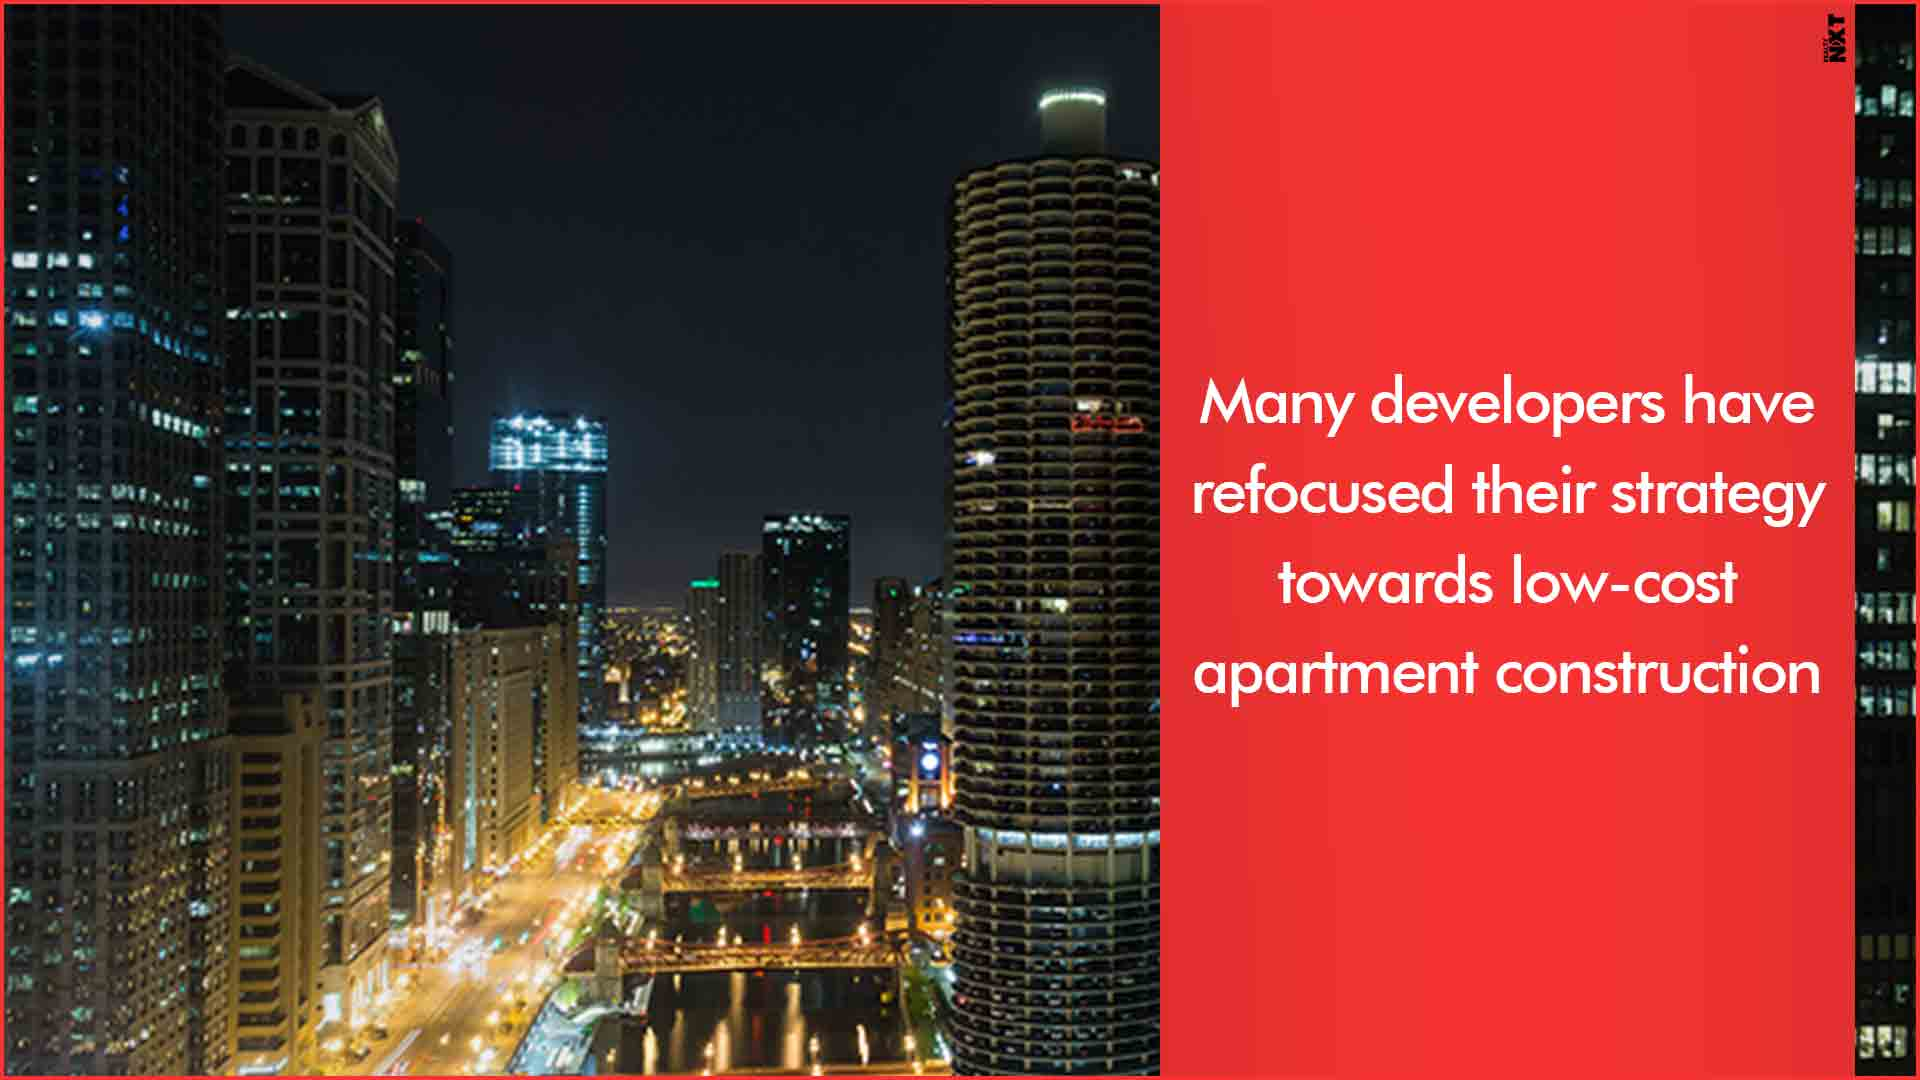 Many developers have refocused their strategy towards low cost apartment construction